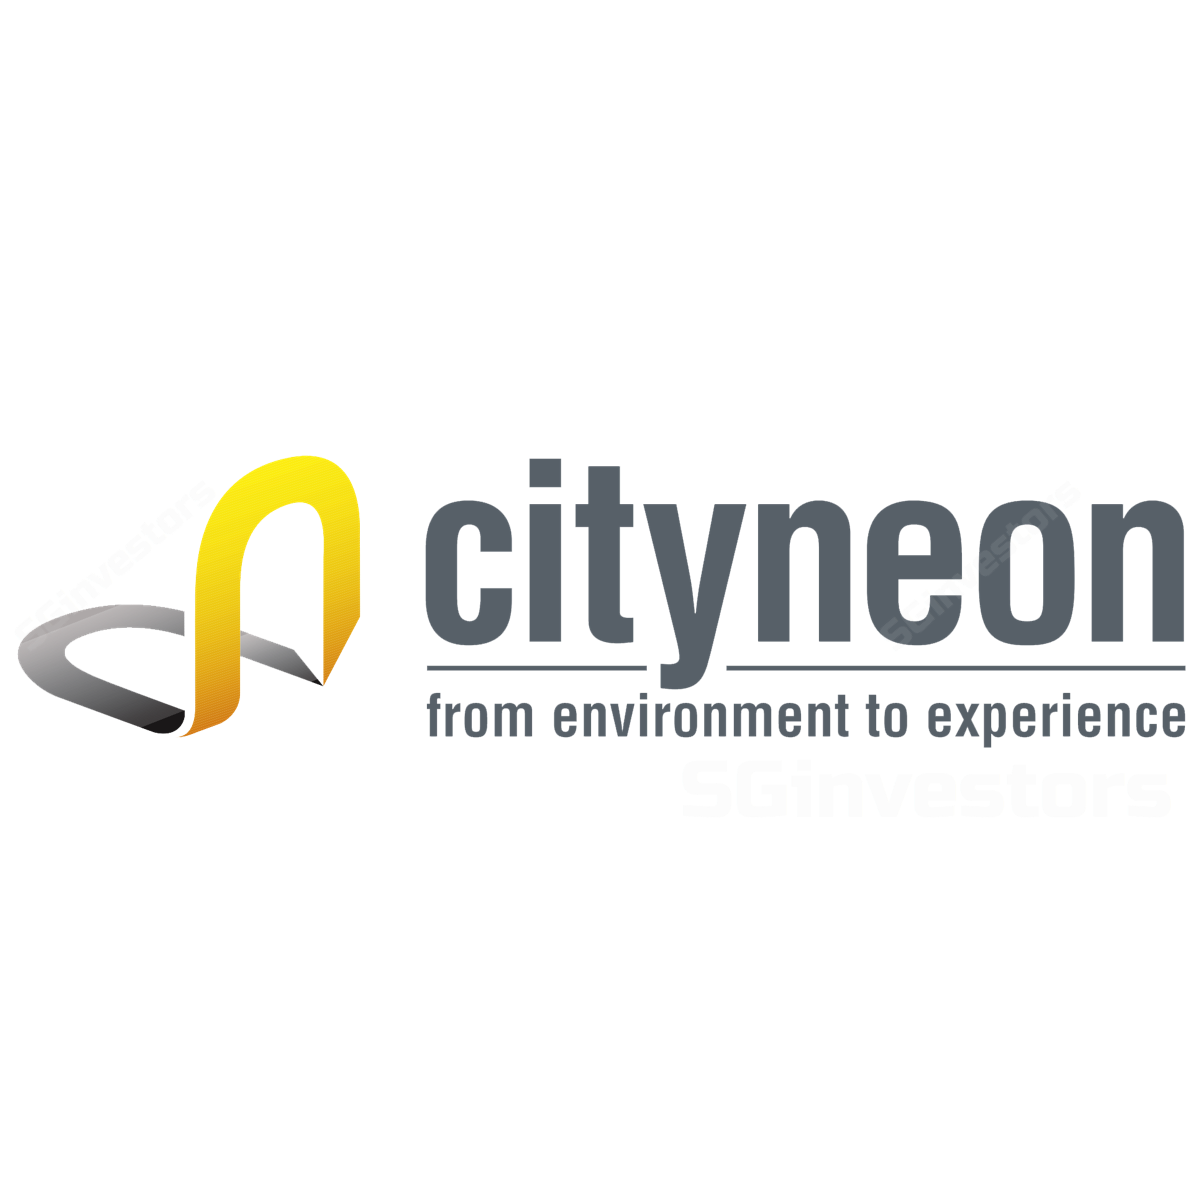 Cityneon Holdings - DBS Vickers 2017-05-30: A Unique And Explosive Bet